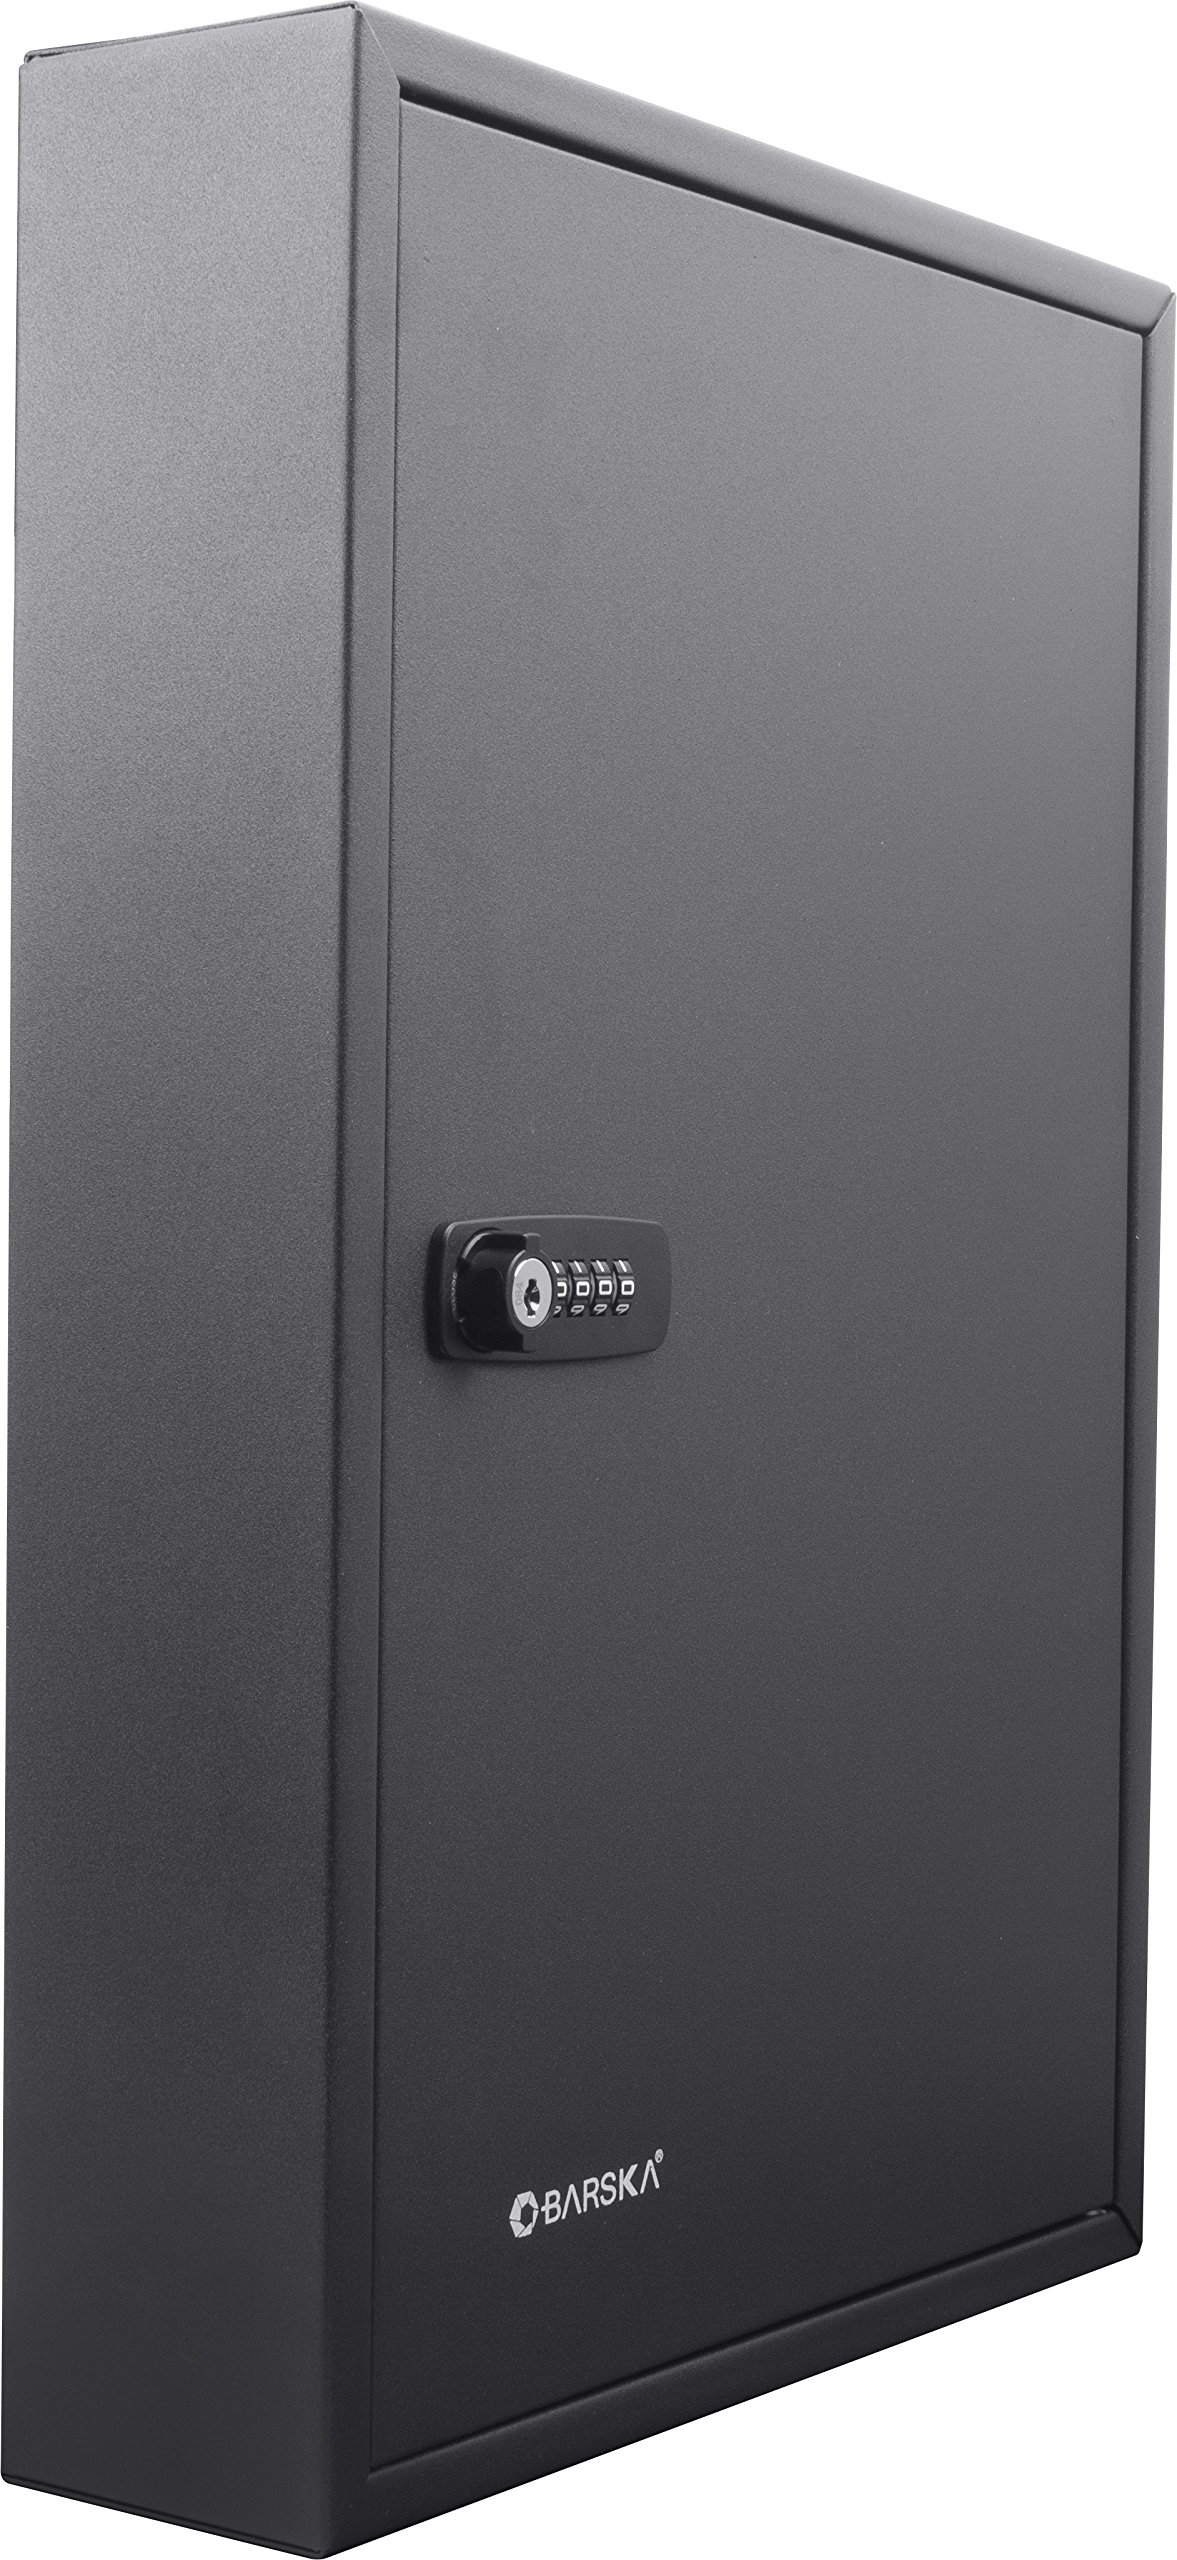 BARSKA CB13264 64 Position Key Cabinet with Combo Lock by BARSKA (Image #3)